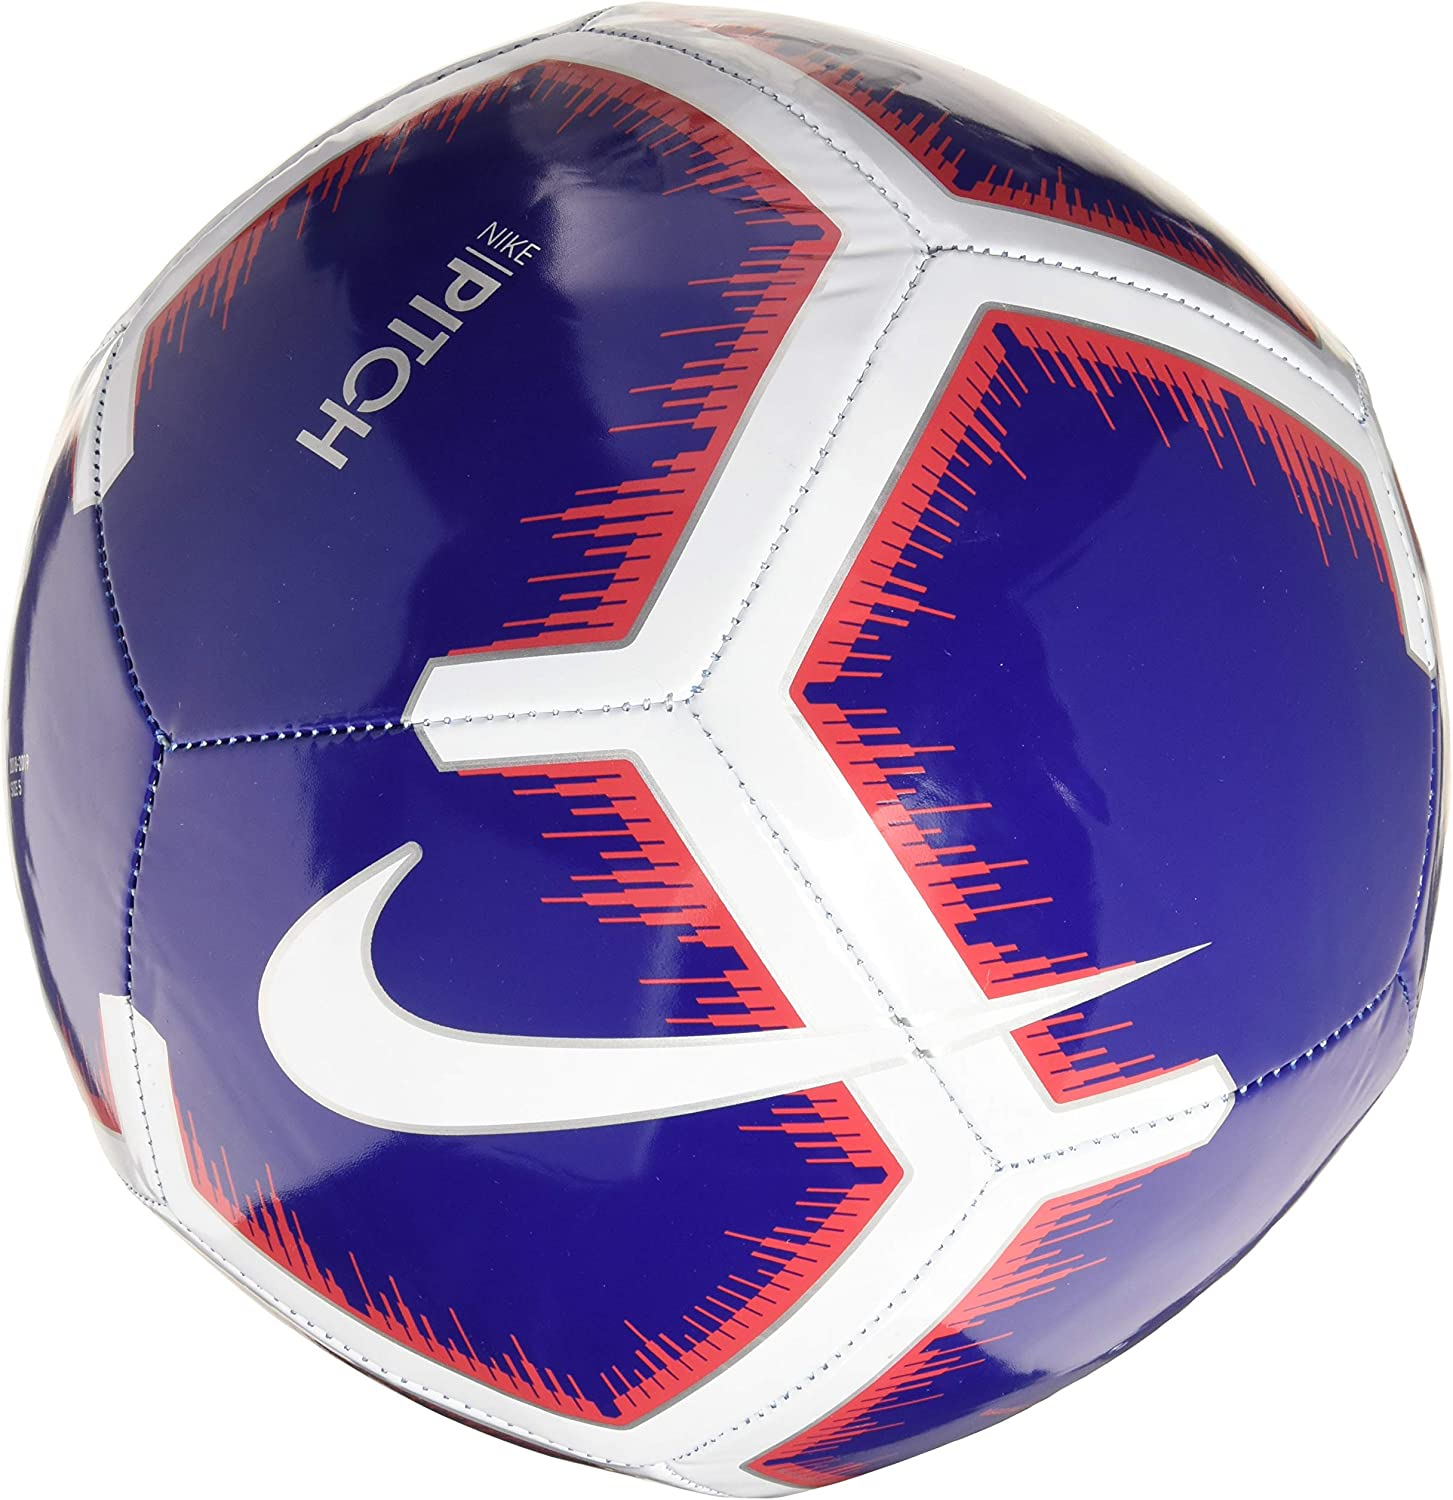 lista Individualidad Tejido  Nike Pitch Premier League Football 2018/2019, deep Royal  Blue/White/red/Whit, 5: Amazon.co.uk: Sports & Outdoors